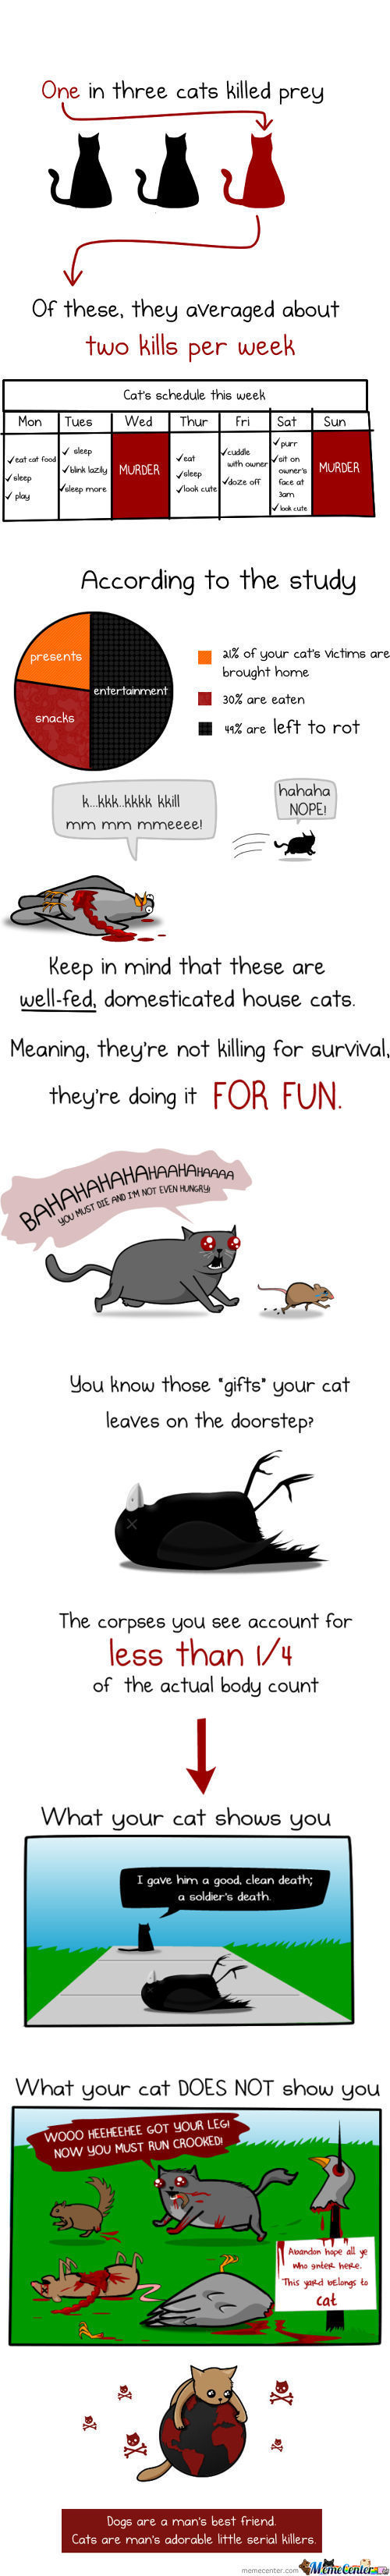 How Much Does A Cat Kill? (The Oatmeal)